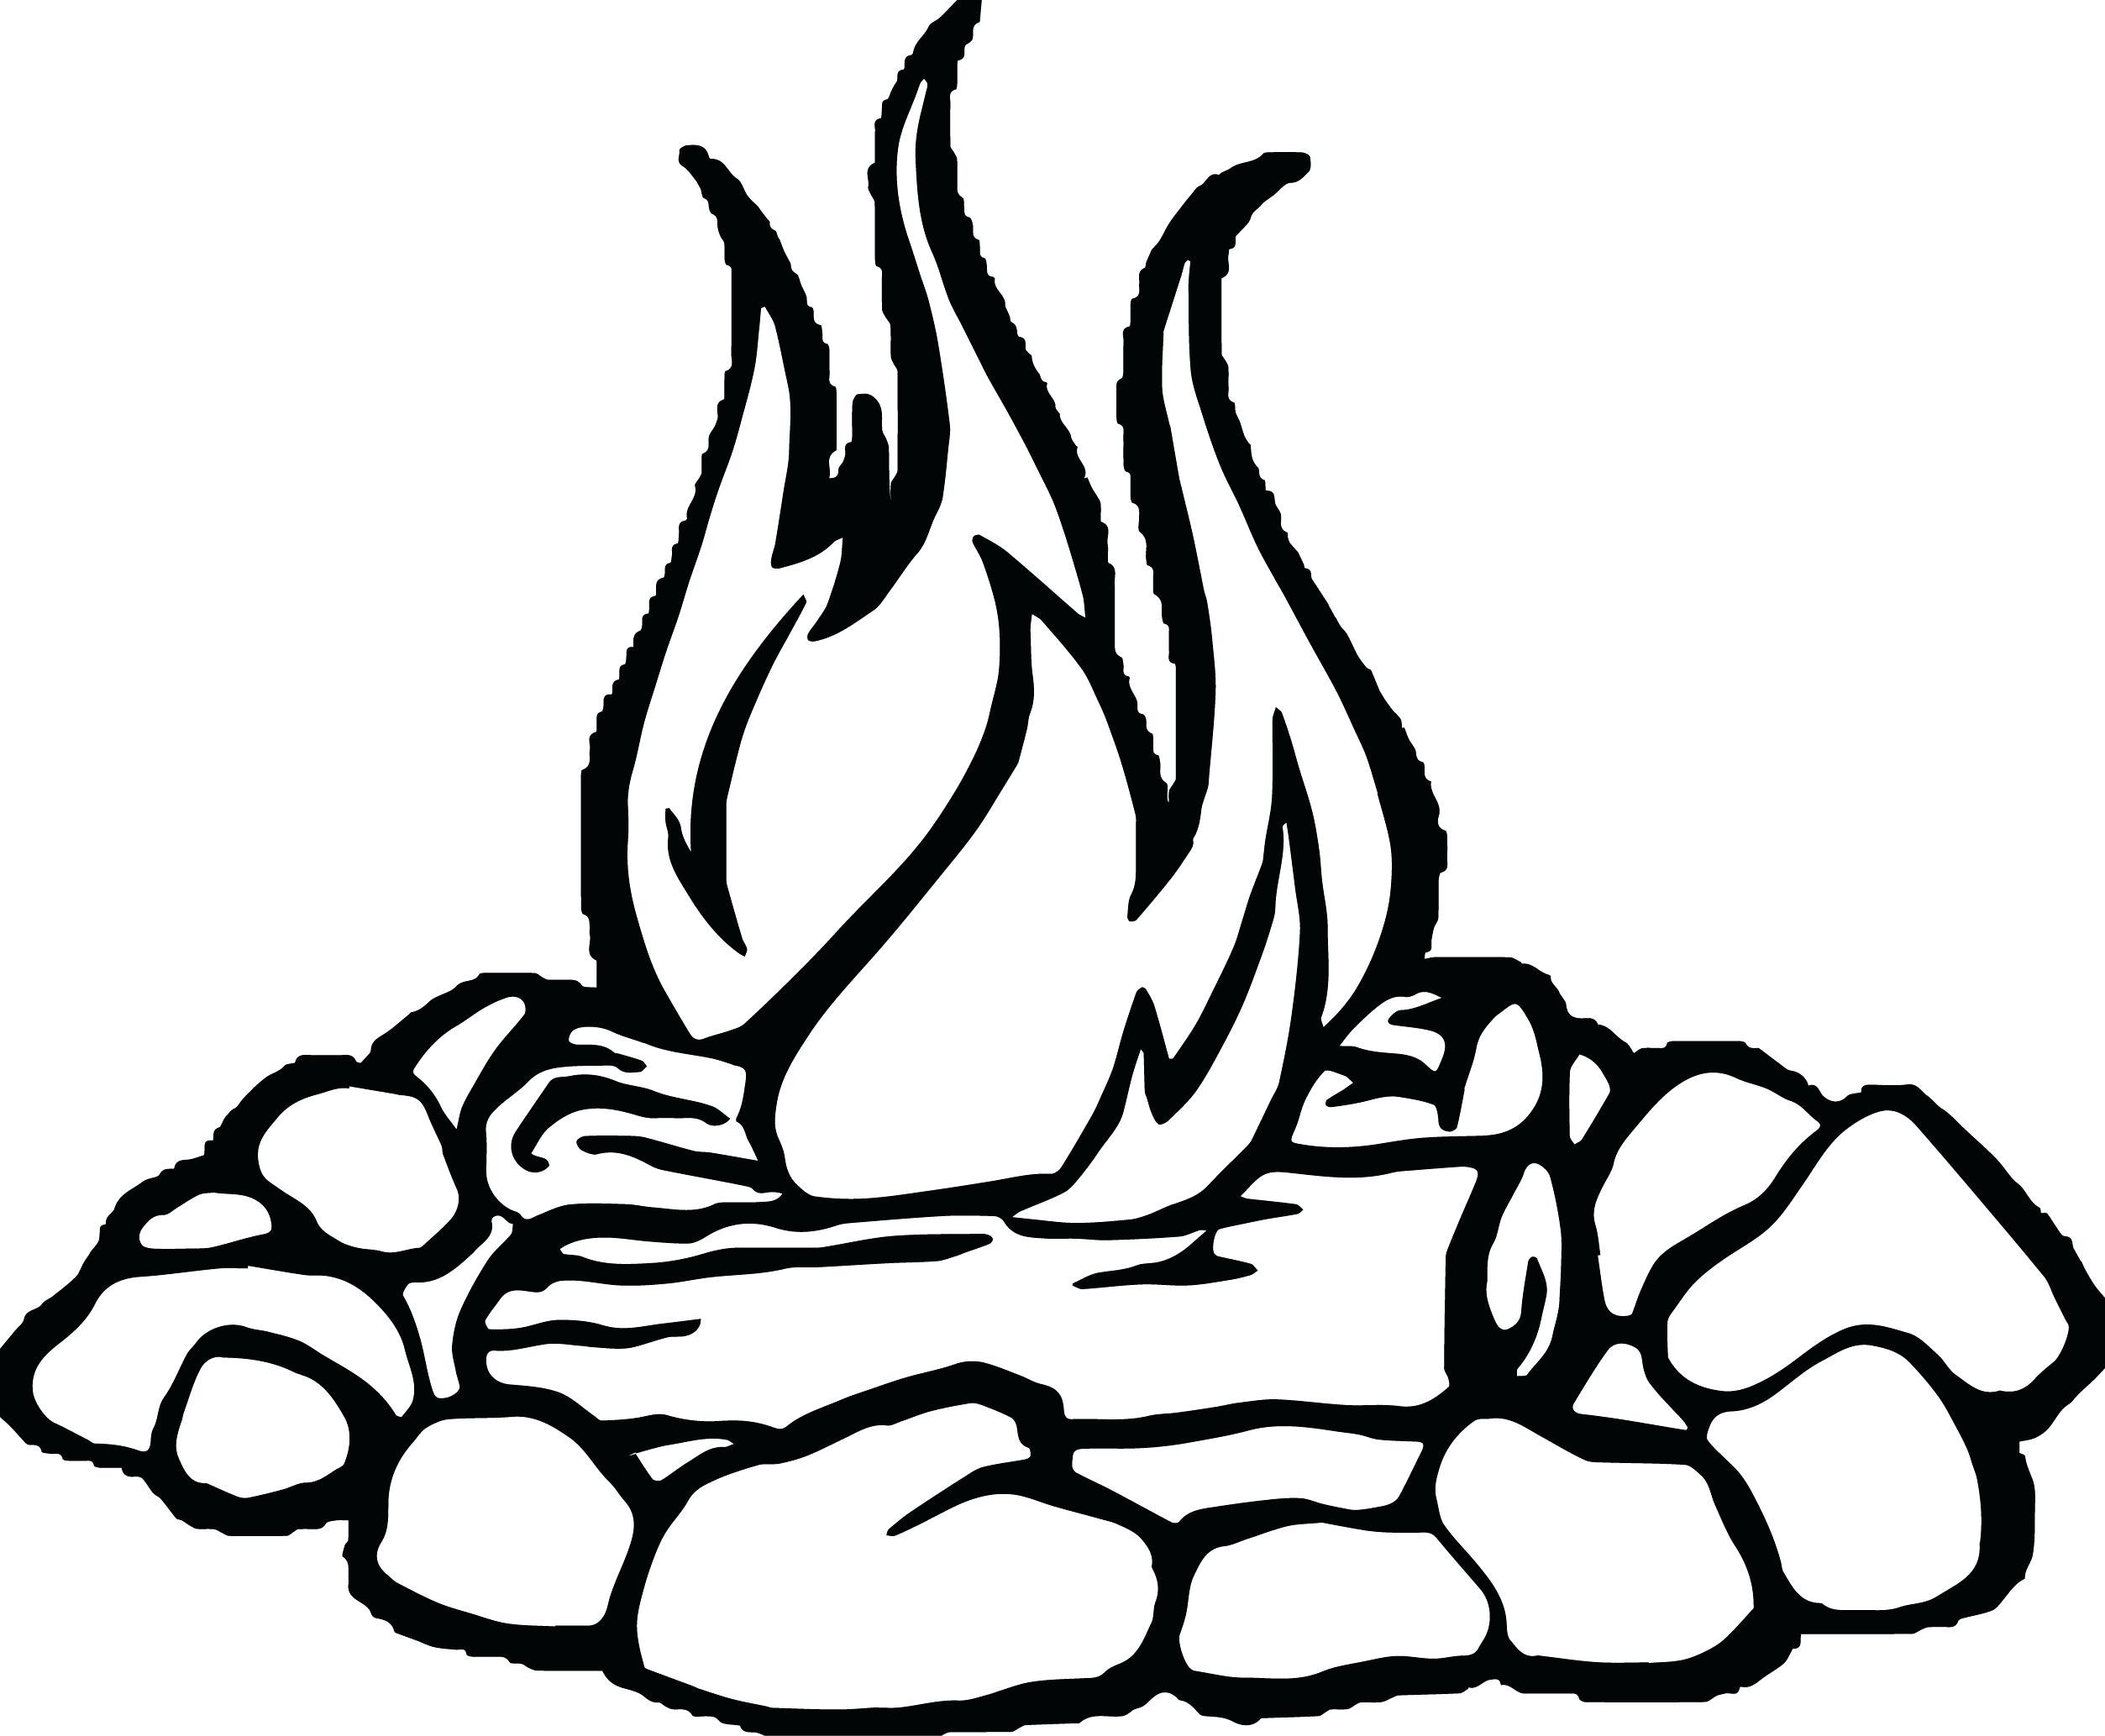 Flames Outline Drawing